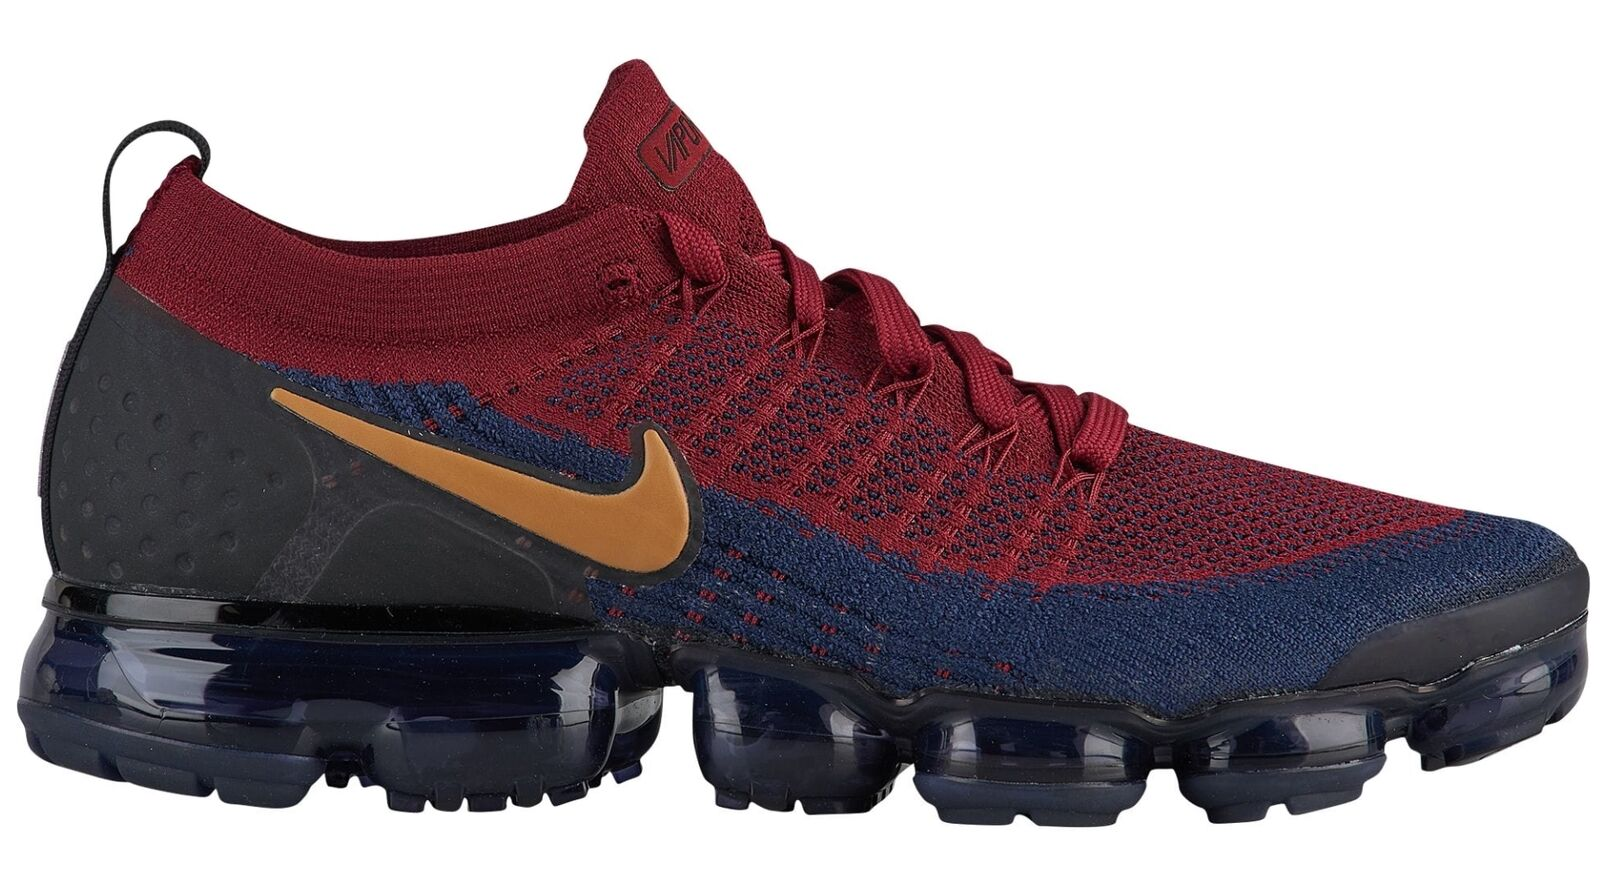 Nike Air Vapormax Flyknit 2 Uomo 942842-604 Red Obsidian Running Shoes Size 11.5